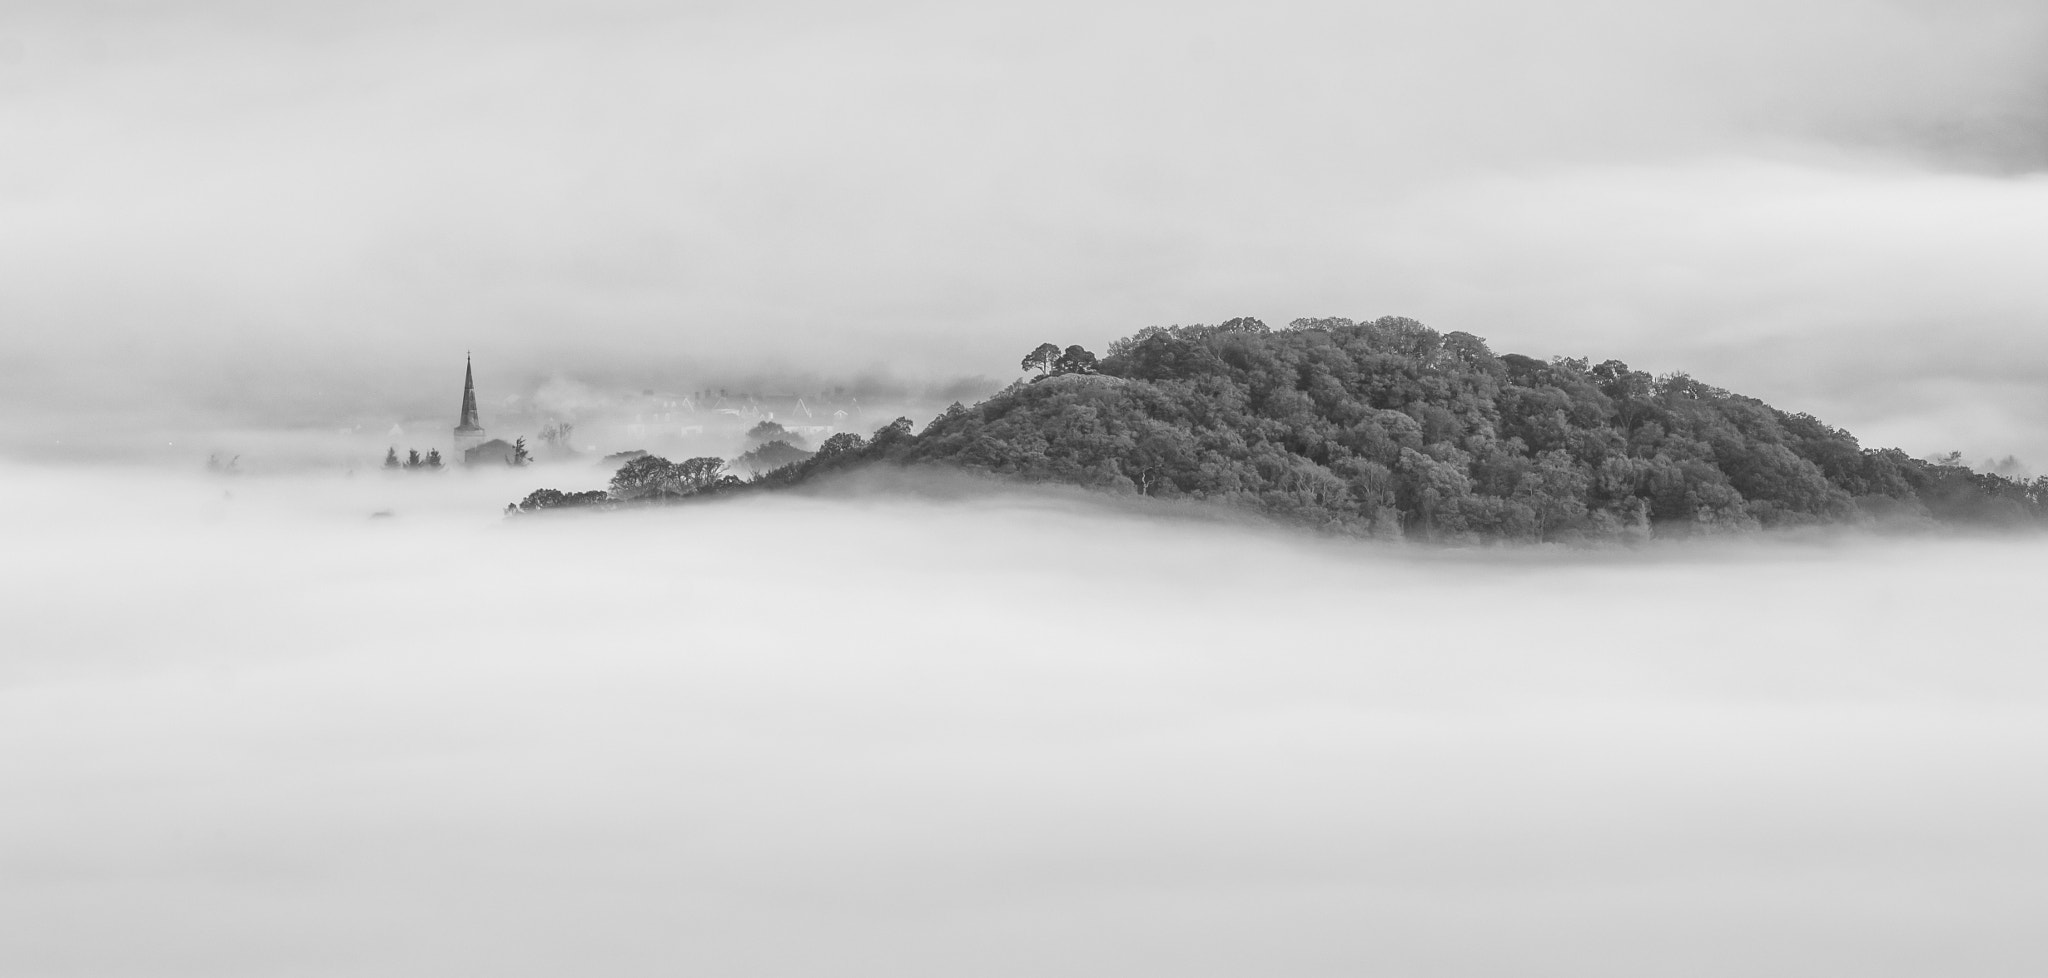 Photograph Keswick under a Blanket. by Mark Littlejohn on 500px